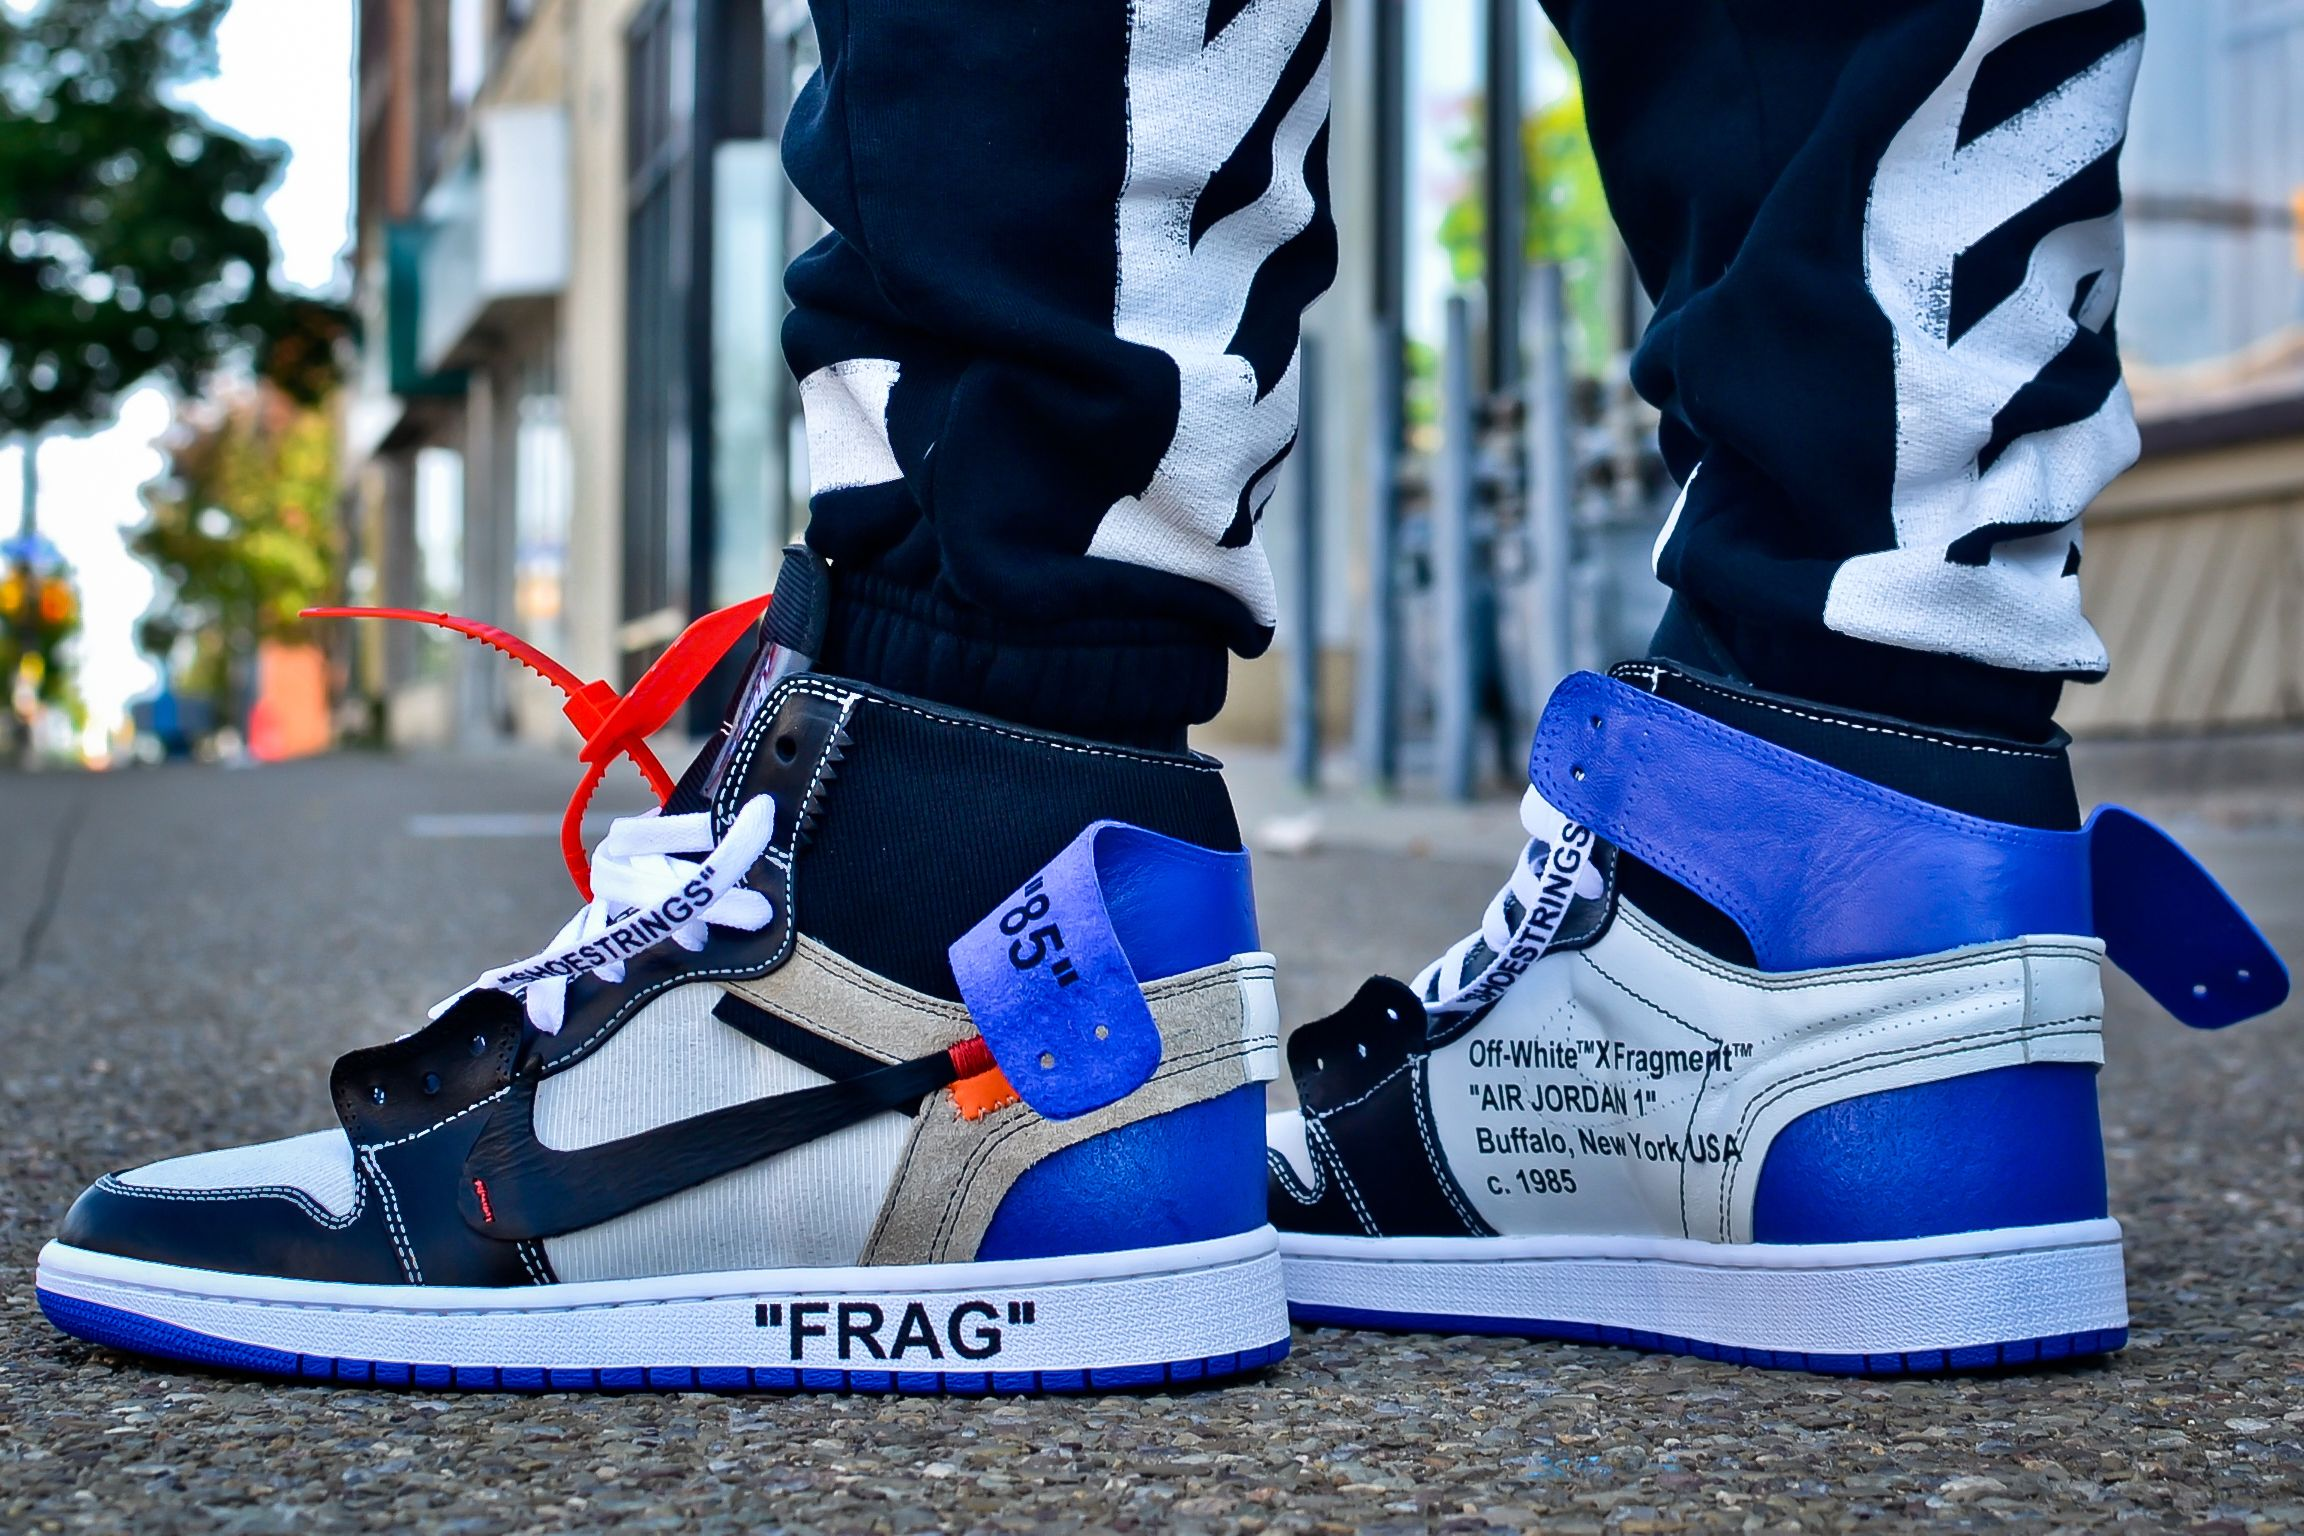 942f16d8b954 Customizer Imagines a Virgil Abloh x fragment design x Nike Air Jordan 1